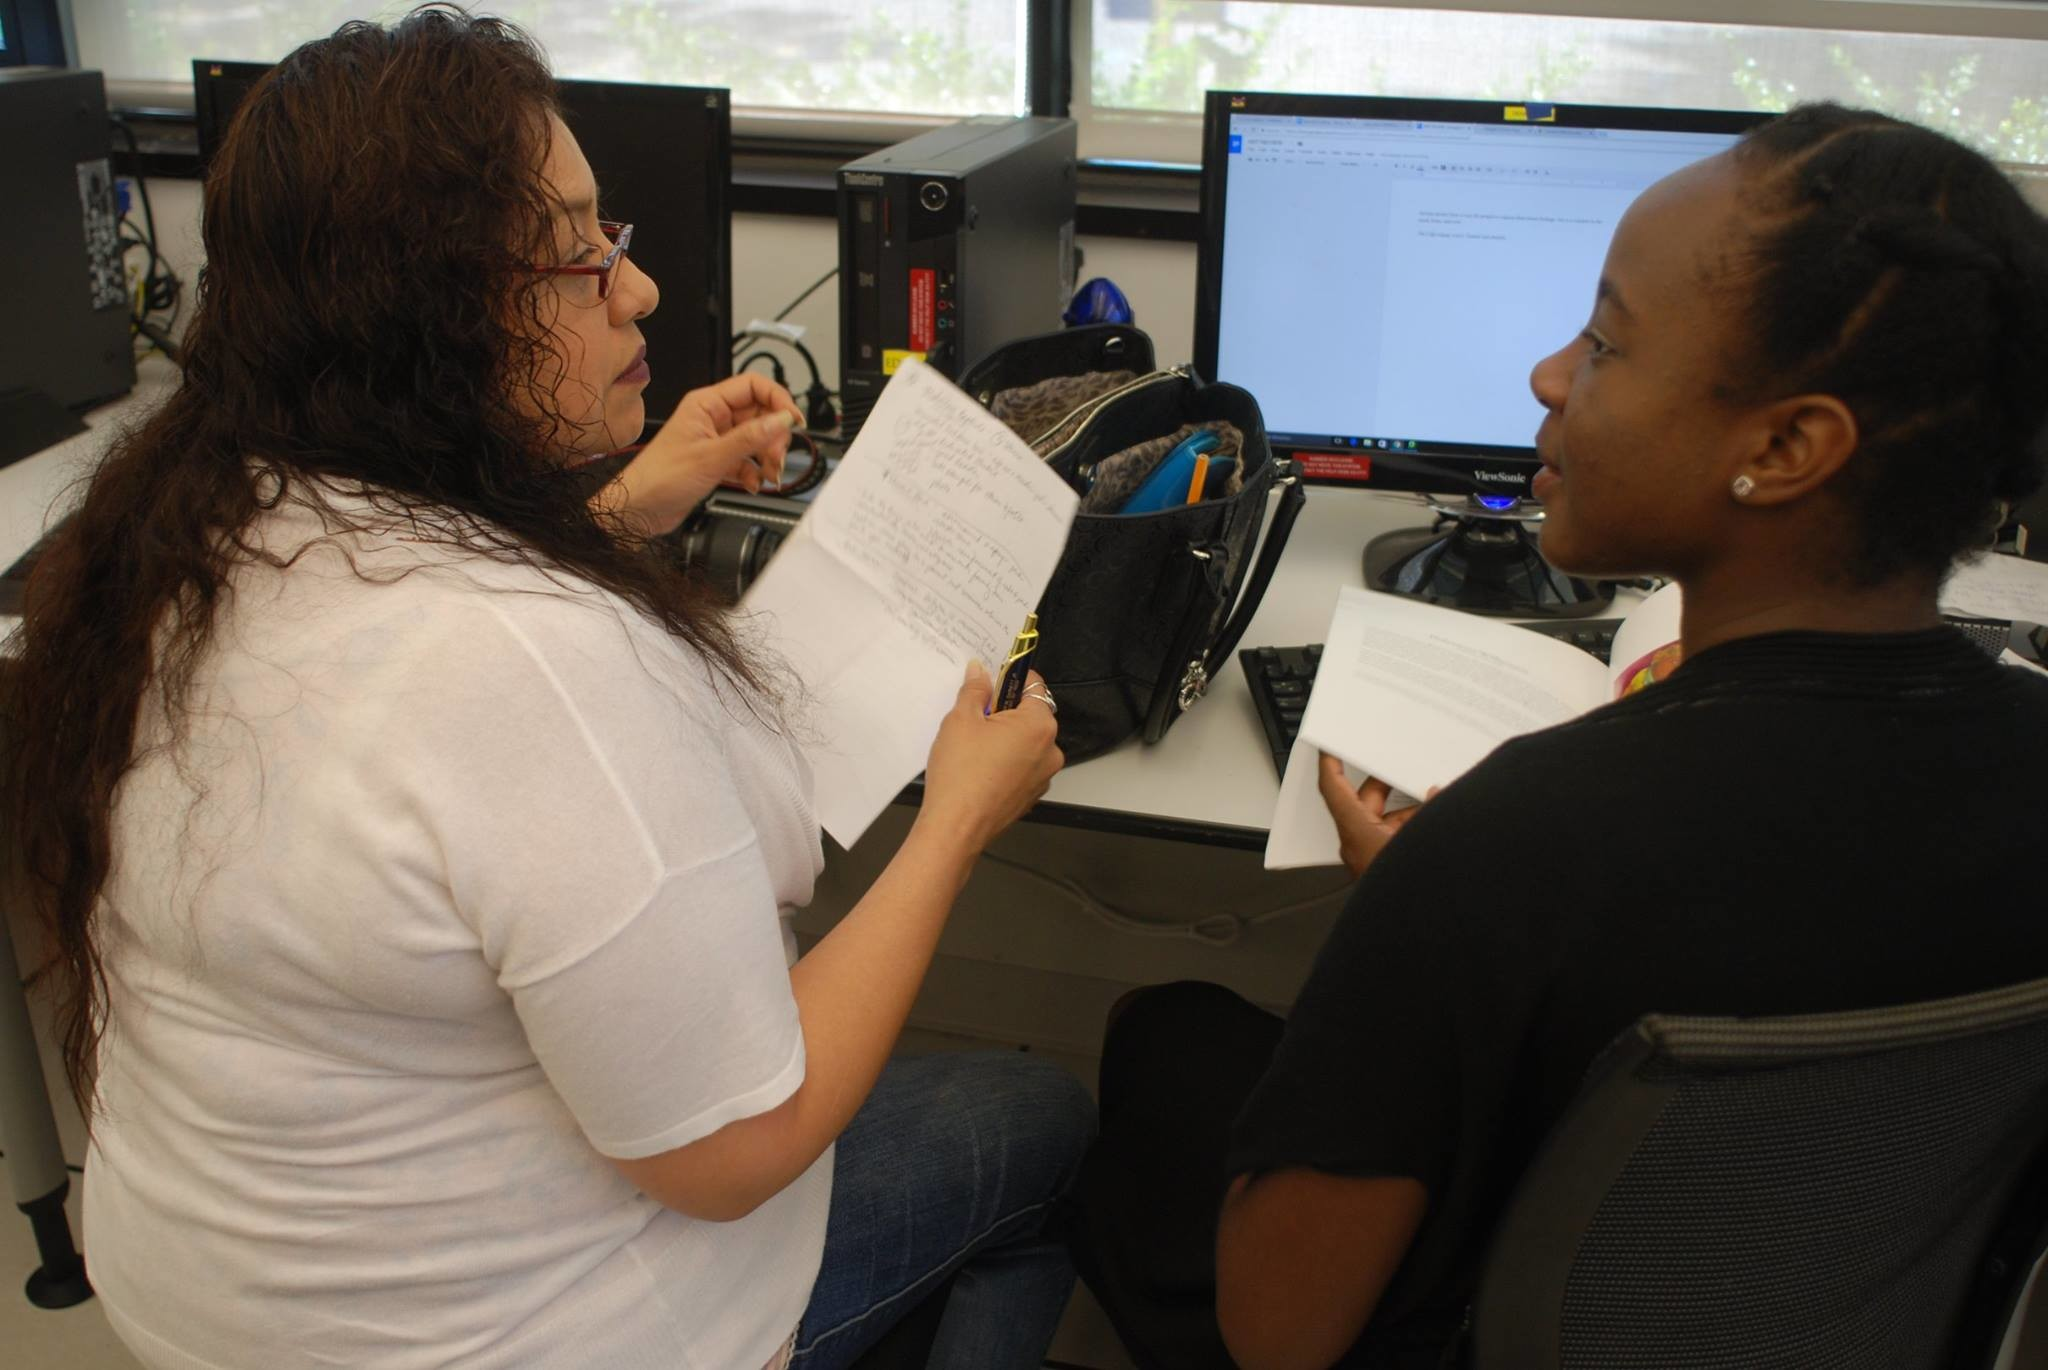 Vanessa Parker, editor of the Franklin Square-Elmont Herald, worked one-on-one with Mikelley Baptiste, an Elmont High junior.